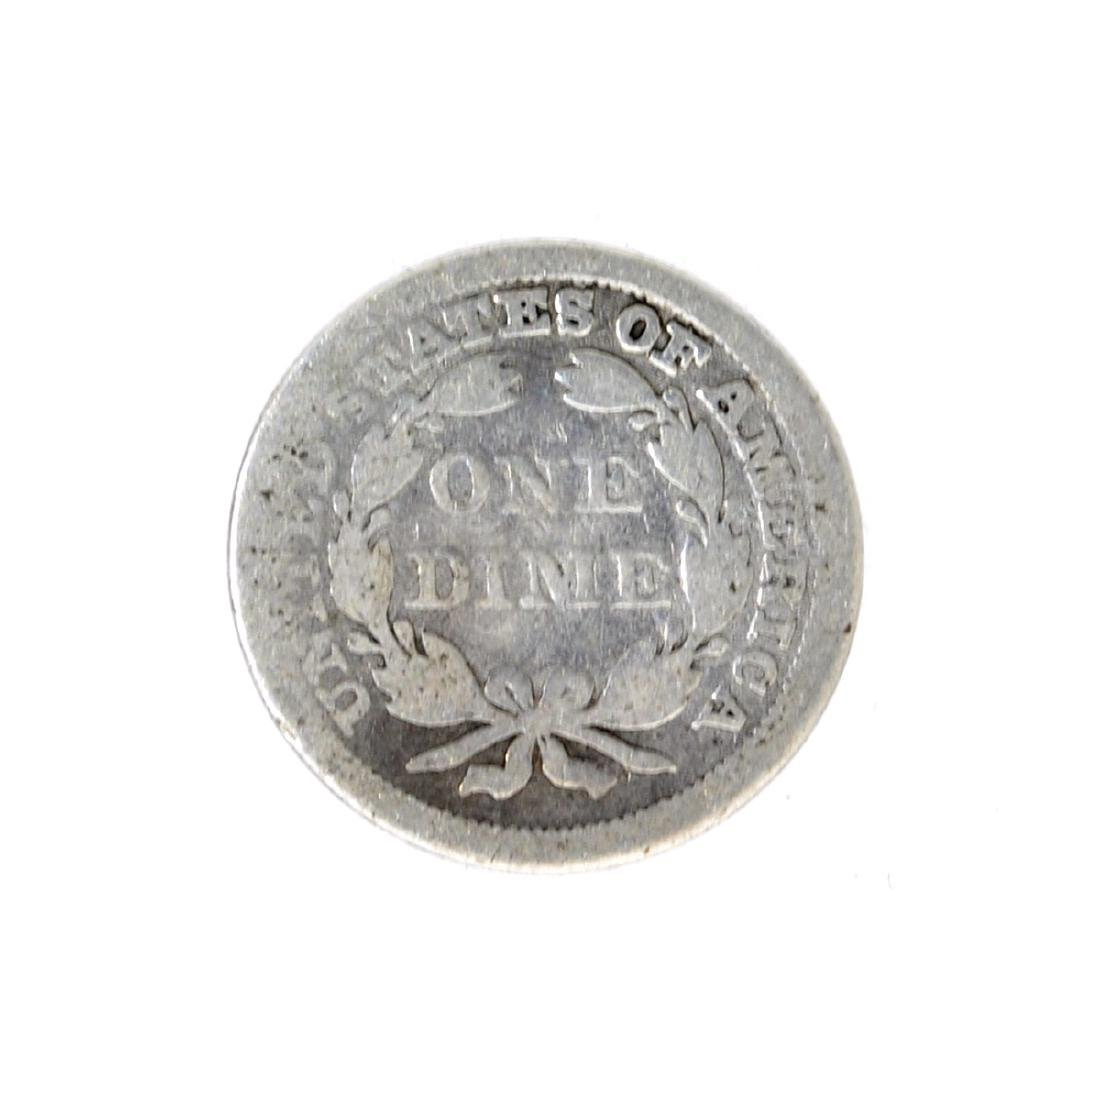 185X Liberty Seated Dime Coin - 2